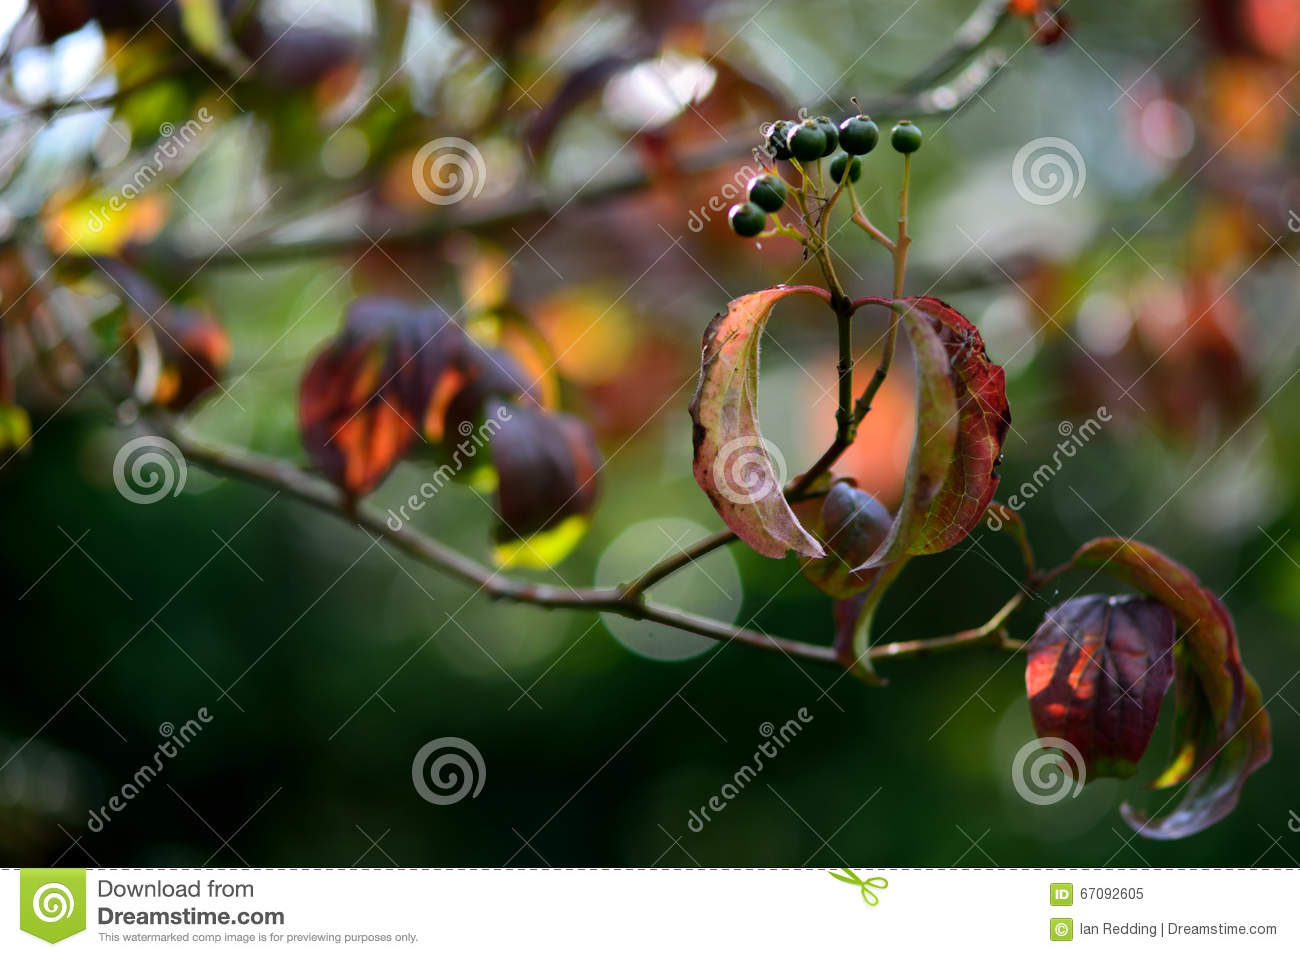 Dogwood (Cornus sanguinea) stock image  Image of hedgerow - 67092605